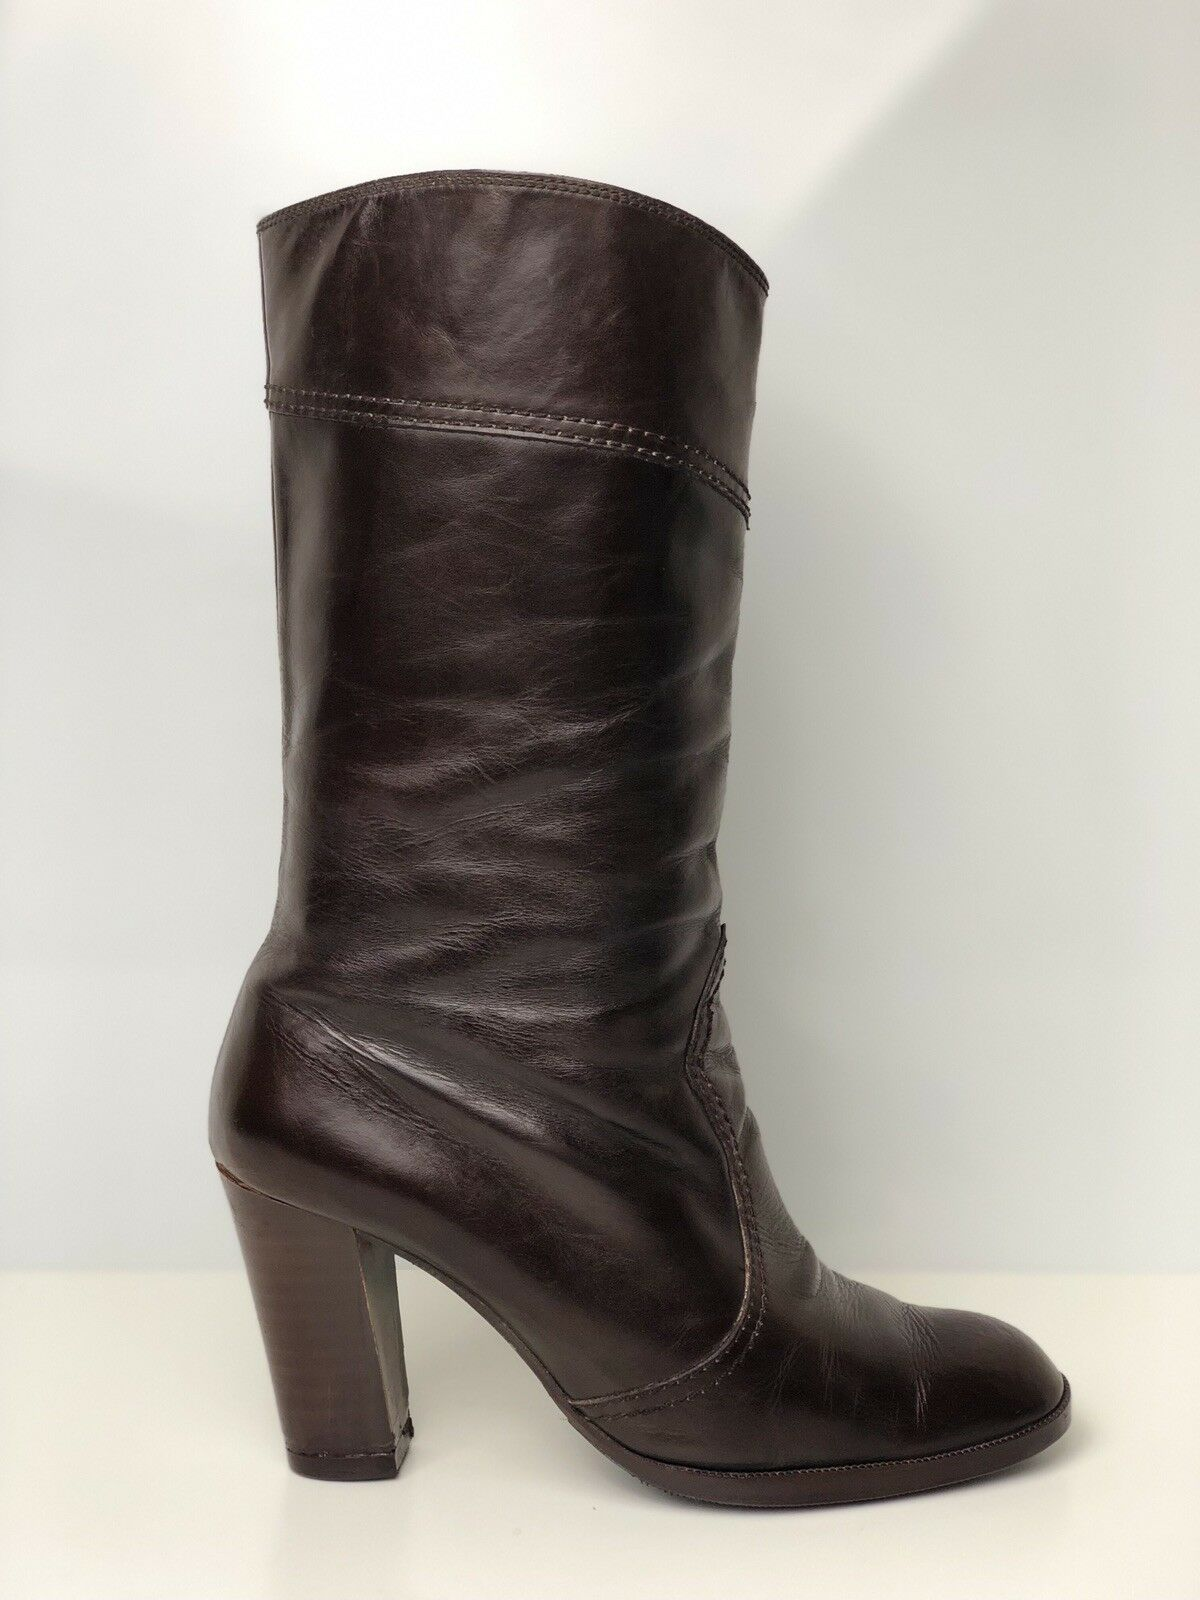 Russell Mi-Mollet and Bromley Femme en Cuir Marron Mi-Mollet Russell Bottes Taille 819860